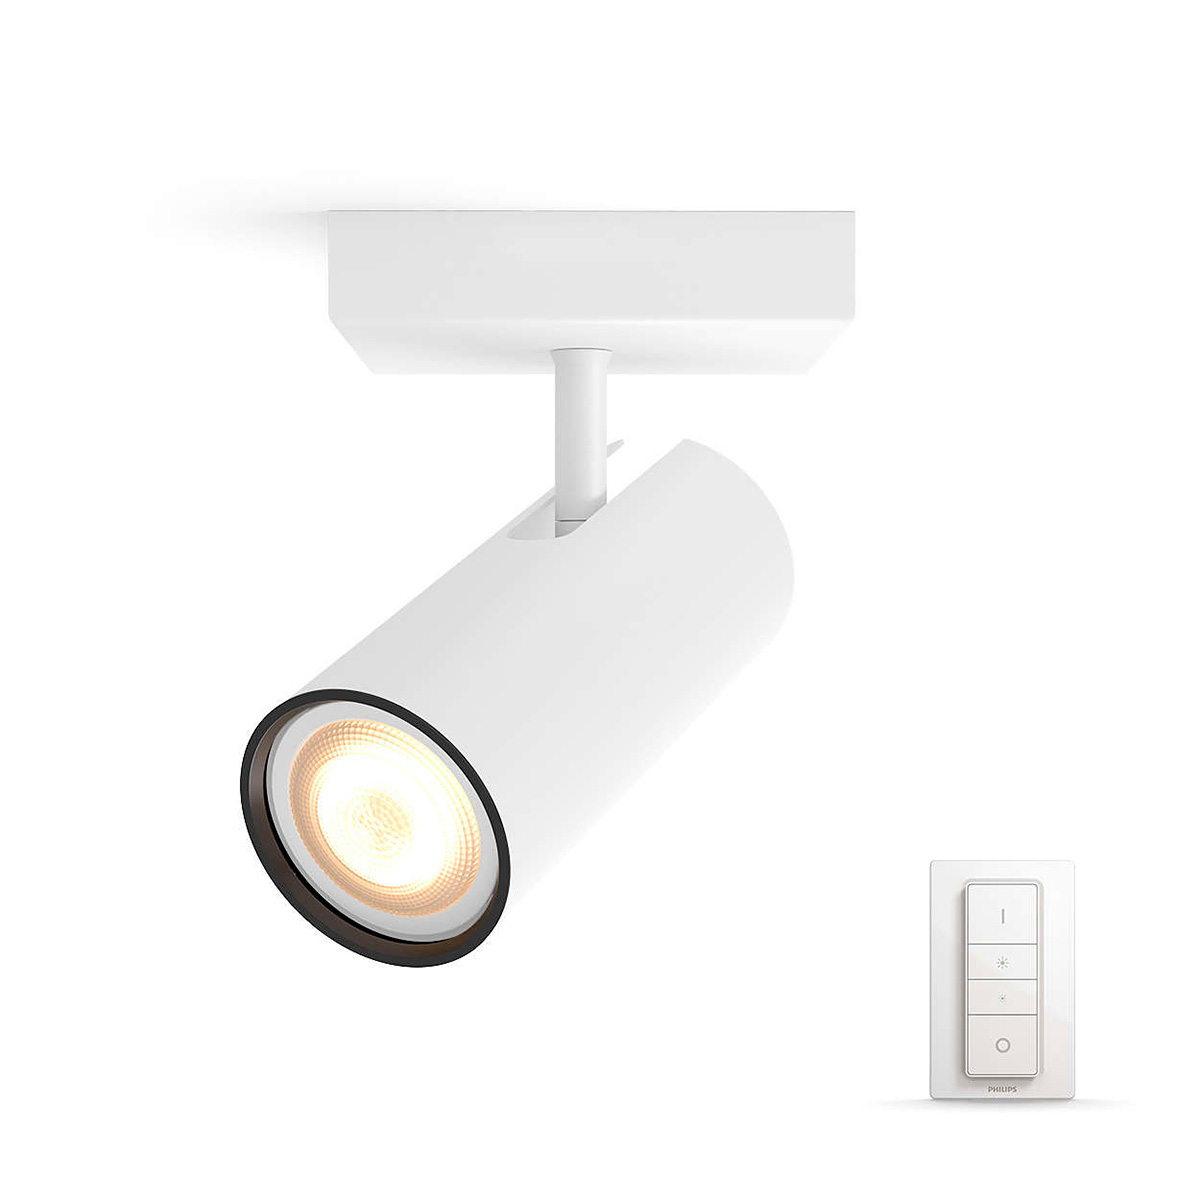 Billede af Philips Connected spot - White ambiance - Buratto - Hvid